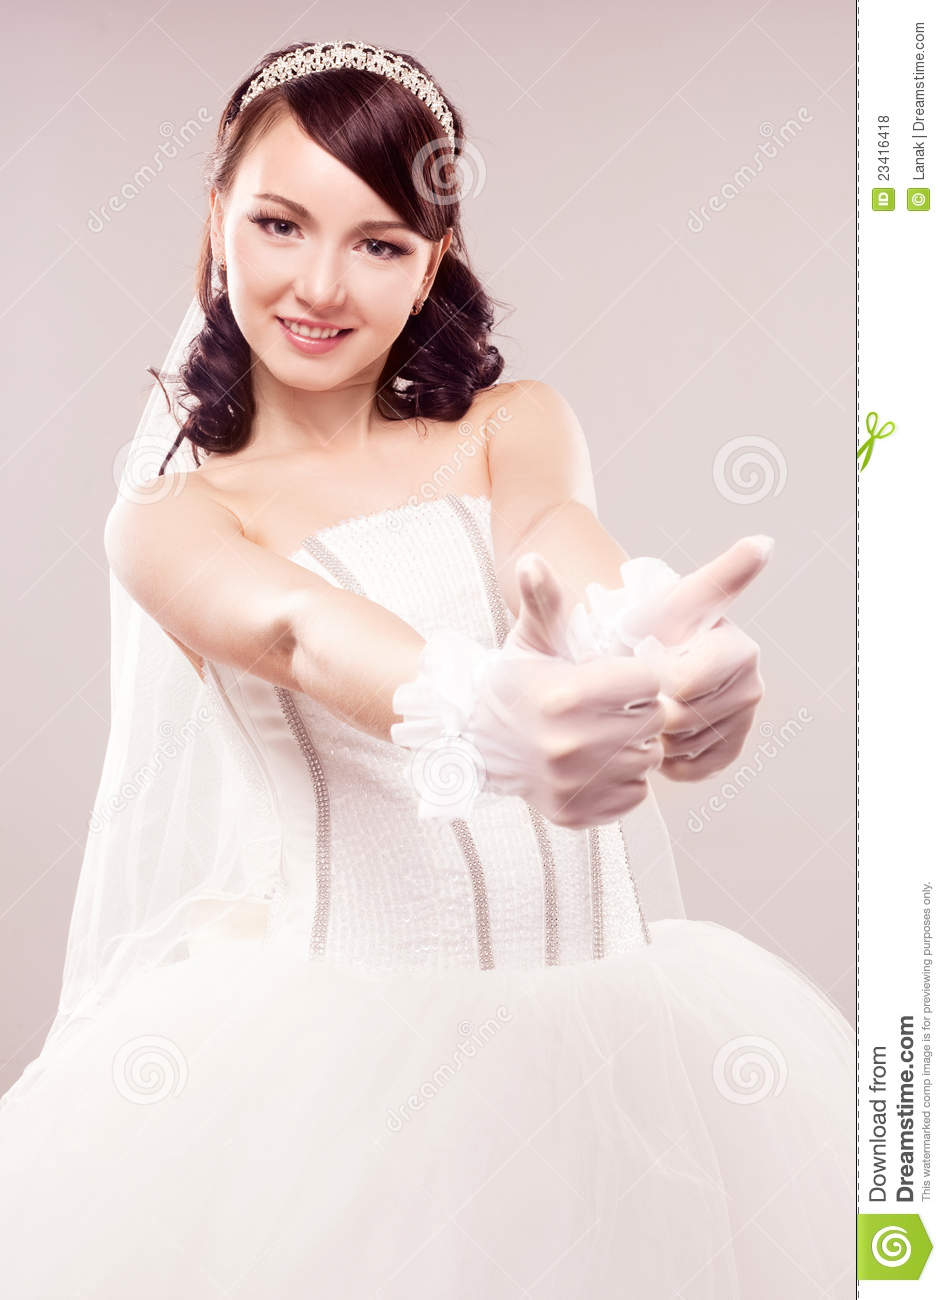 helicopter piggy bank with Royalty Free Stock Photos Bride Thumbs Up Image23416418 on Valentines Day also Presidential Seal further Search Pics Bing Street View Car Google Toy Helicopter Special Key 186022 as well Krrish 3 Merchandise as well 4008789091277.